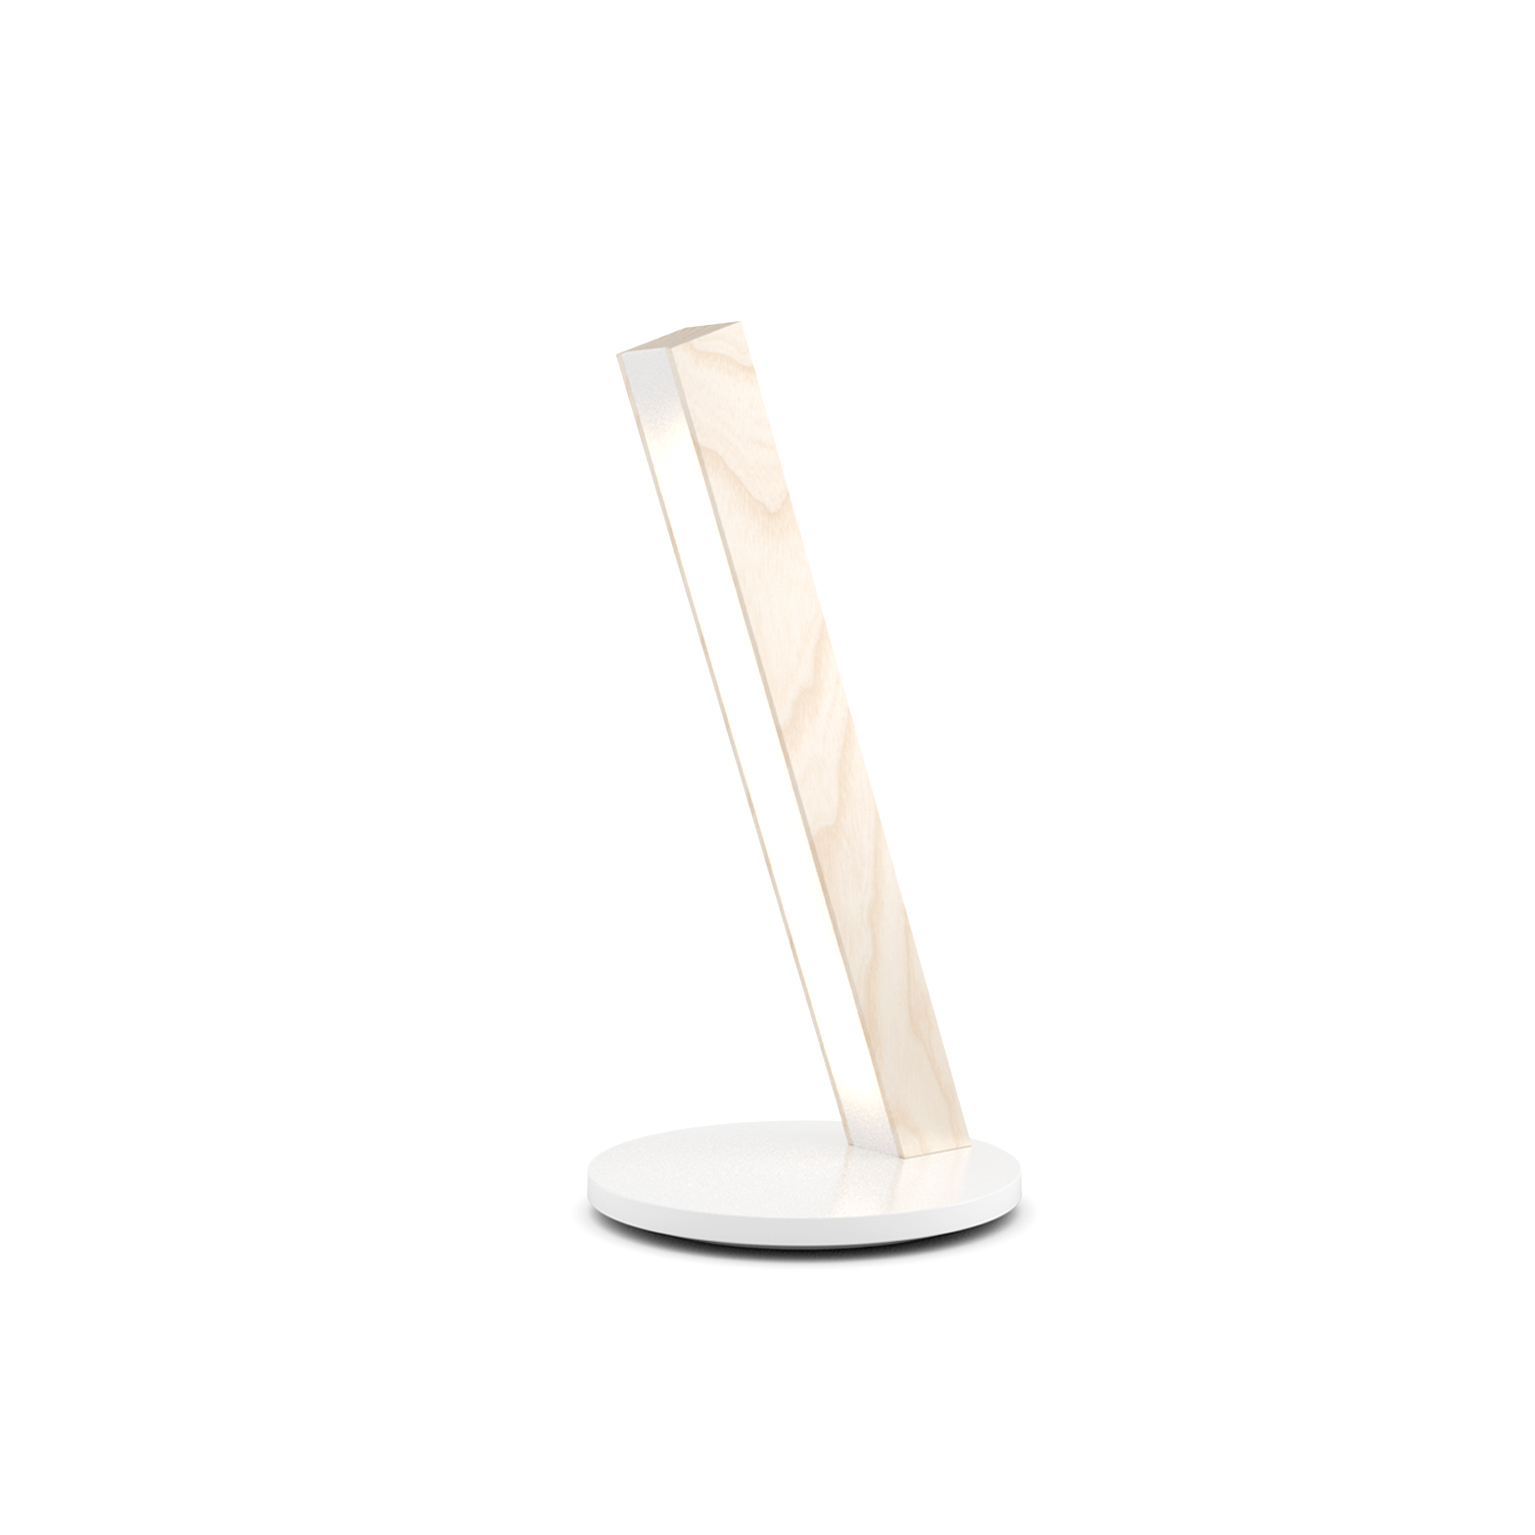 Woodlin by Tunto – 7 7/8″ x 15 3/4″ Portable, Table offers quality European interior lighting design | Zaneen Design